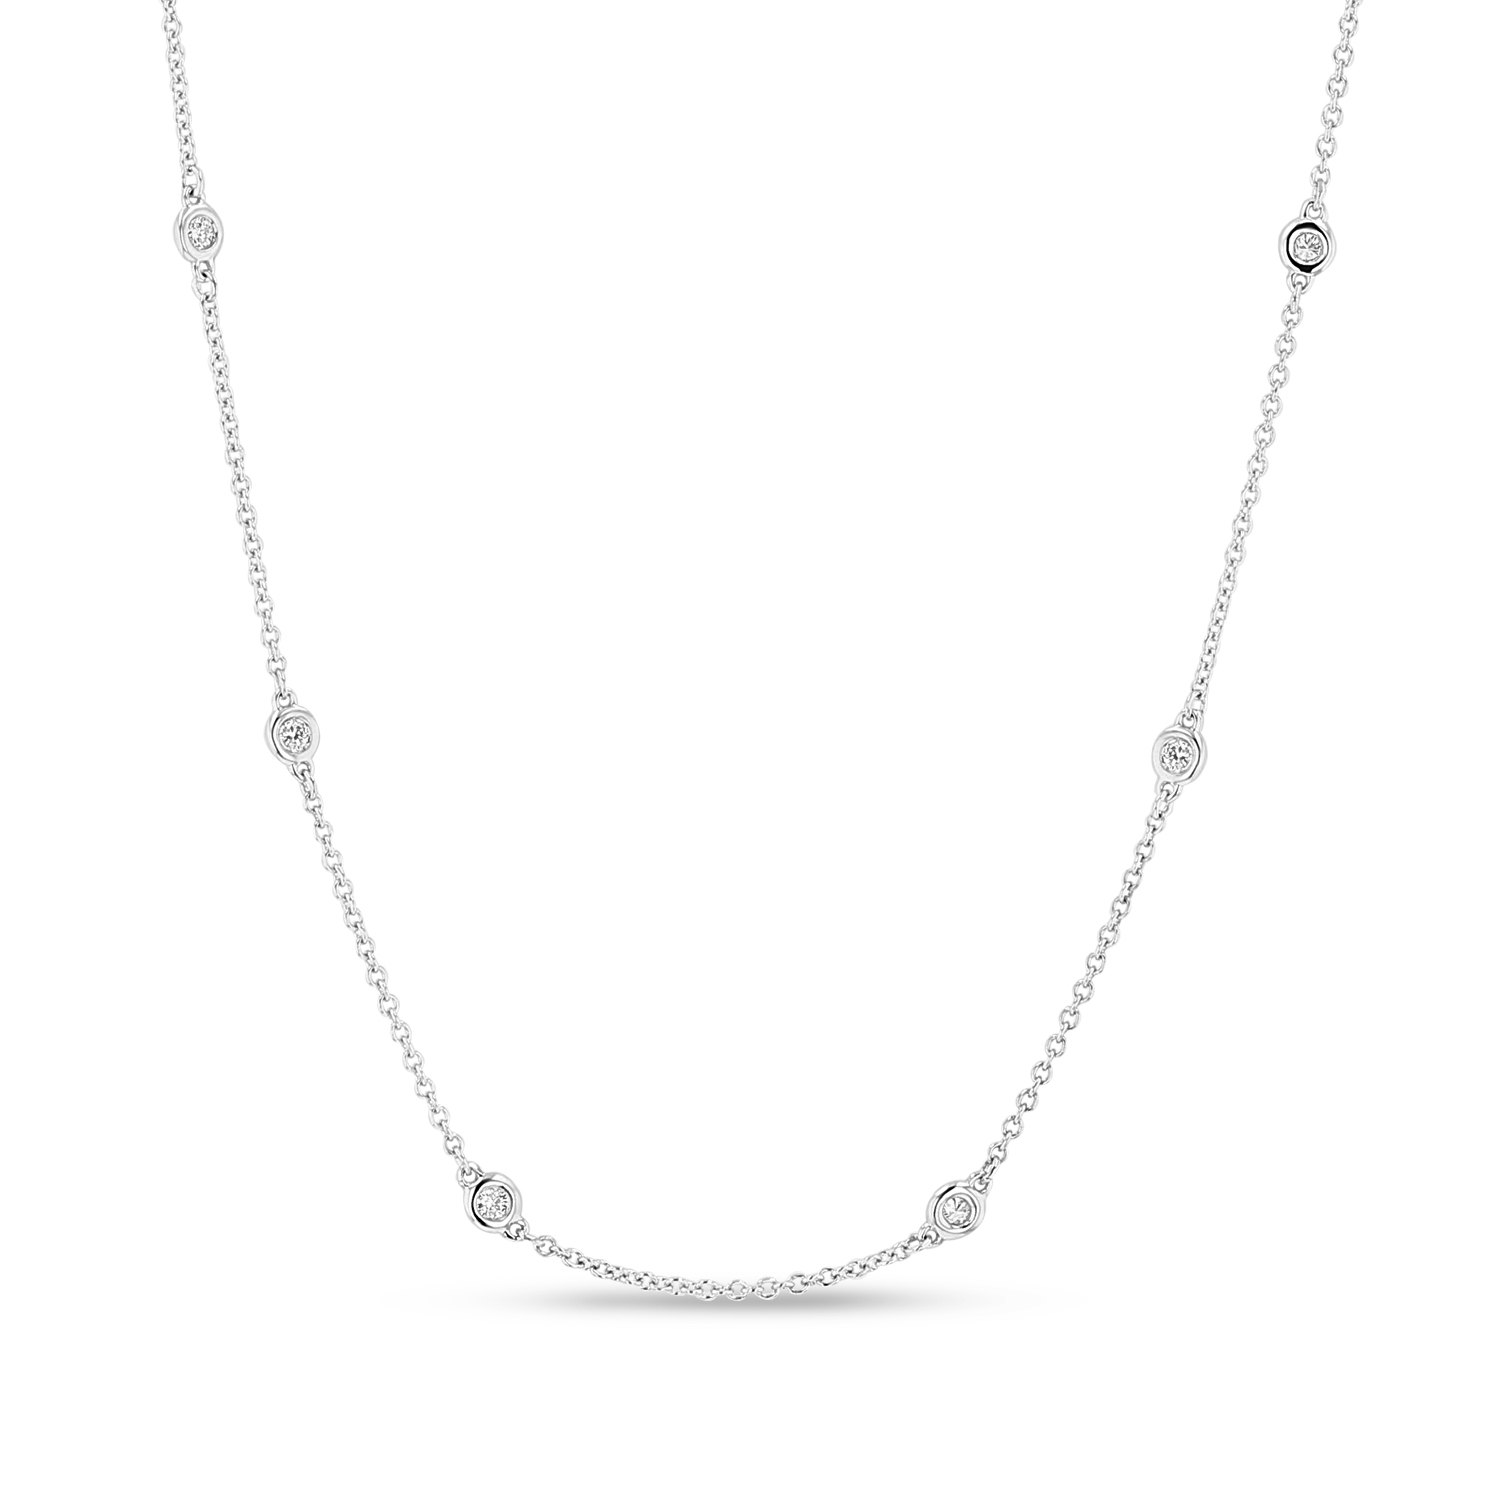 View 0.29ctw 18 inch Diamond By the Yard Necklace in 14k White Gold